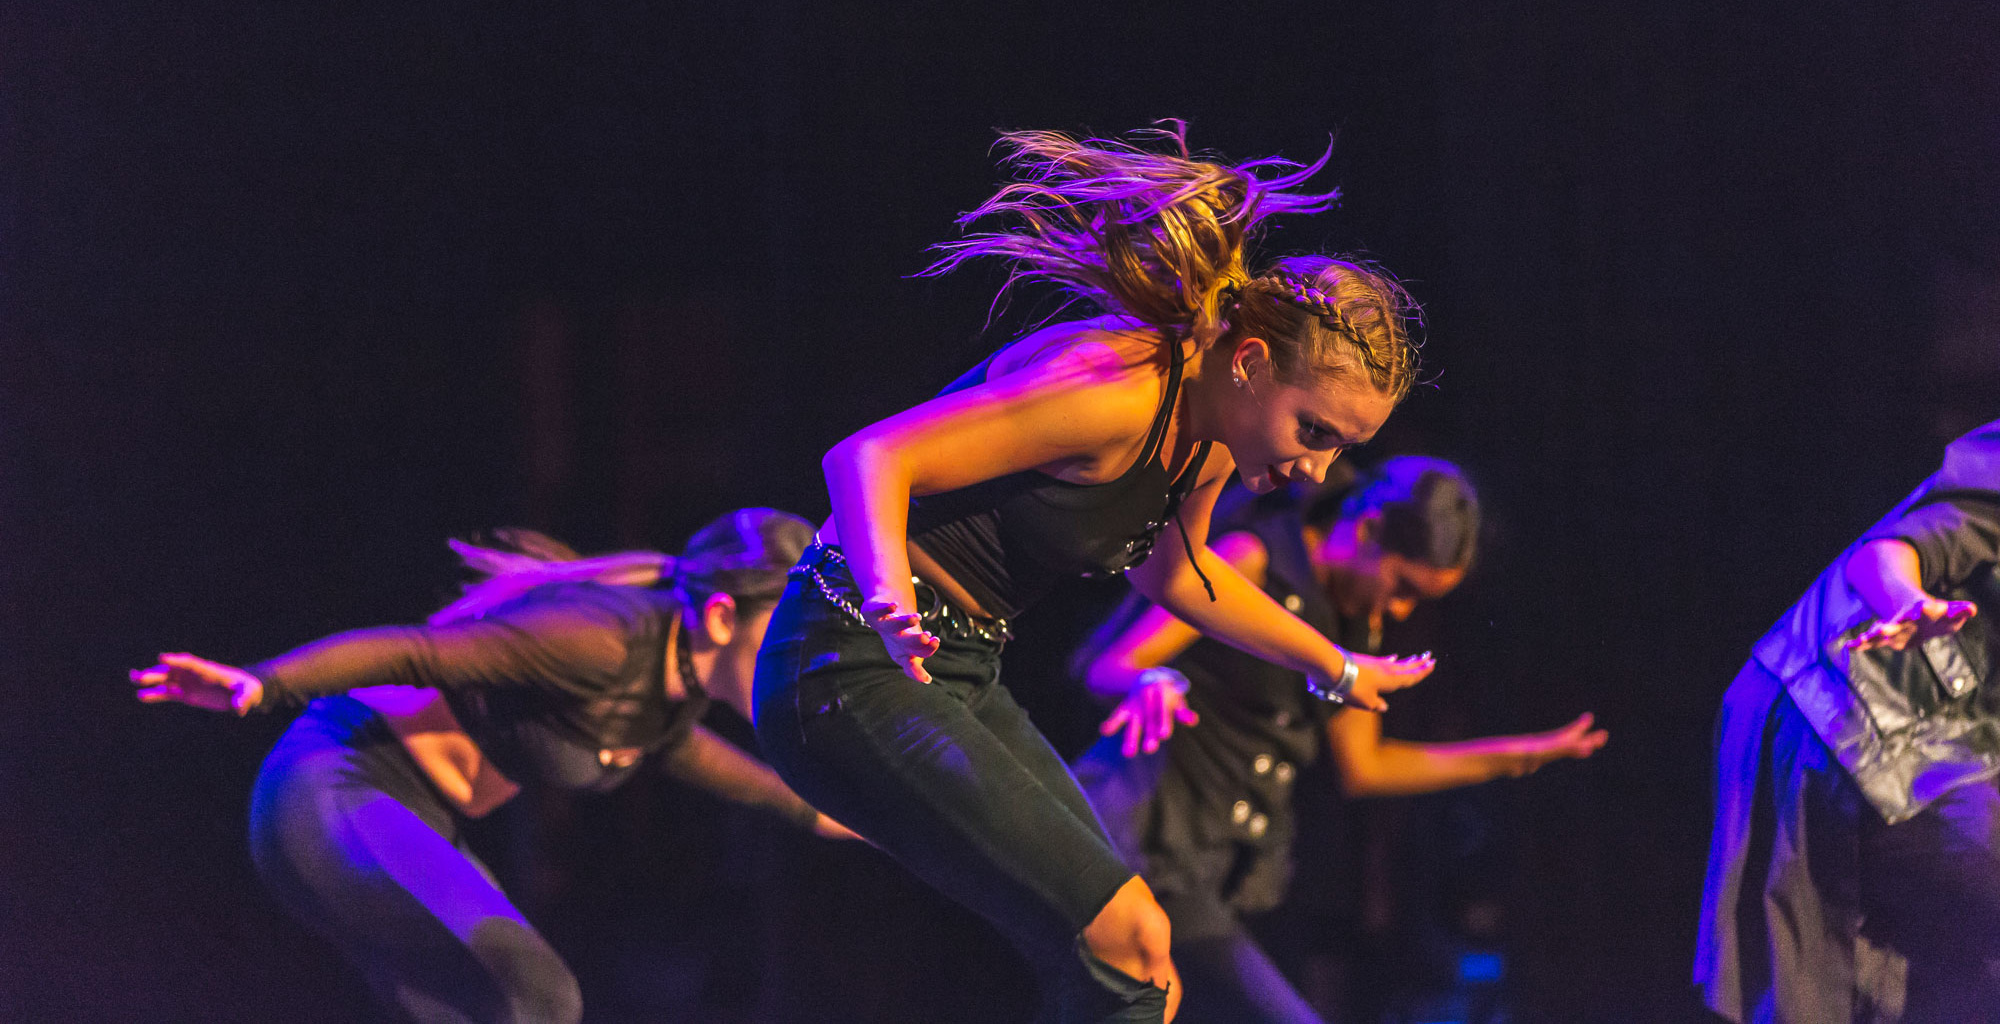 World of Dance | Express yourself and change the world